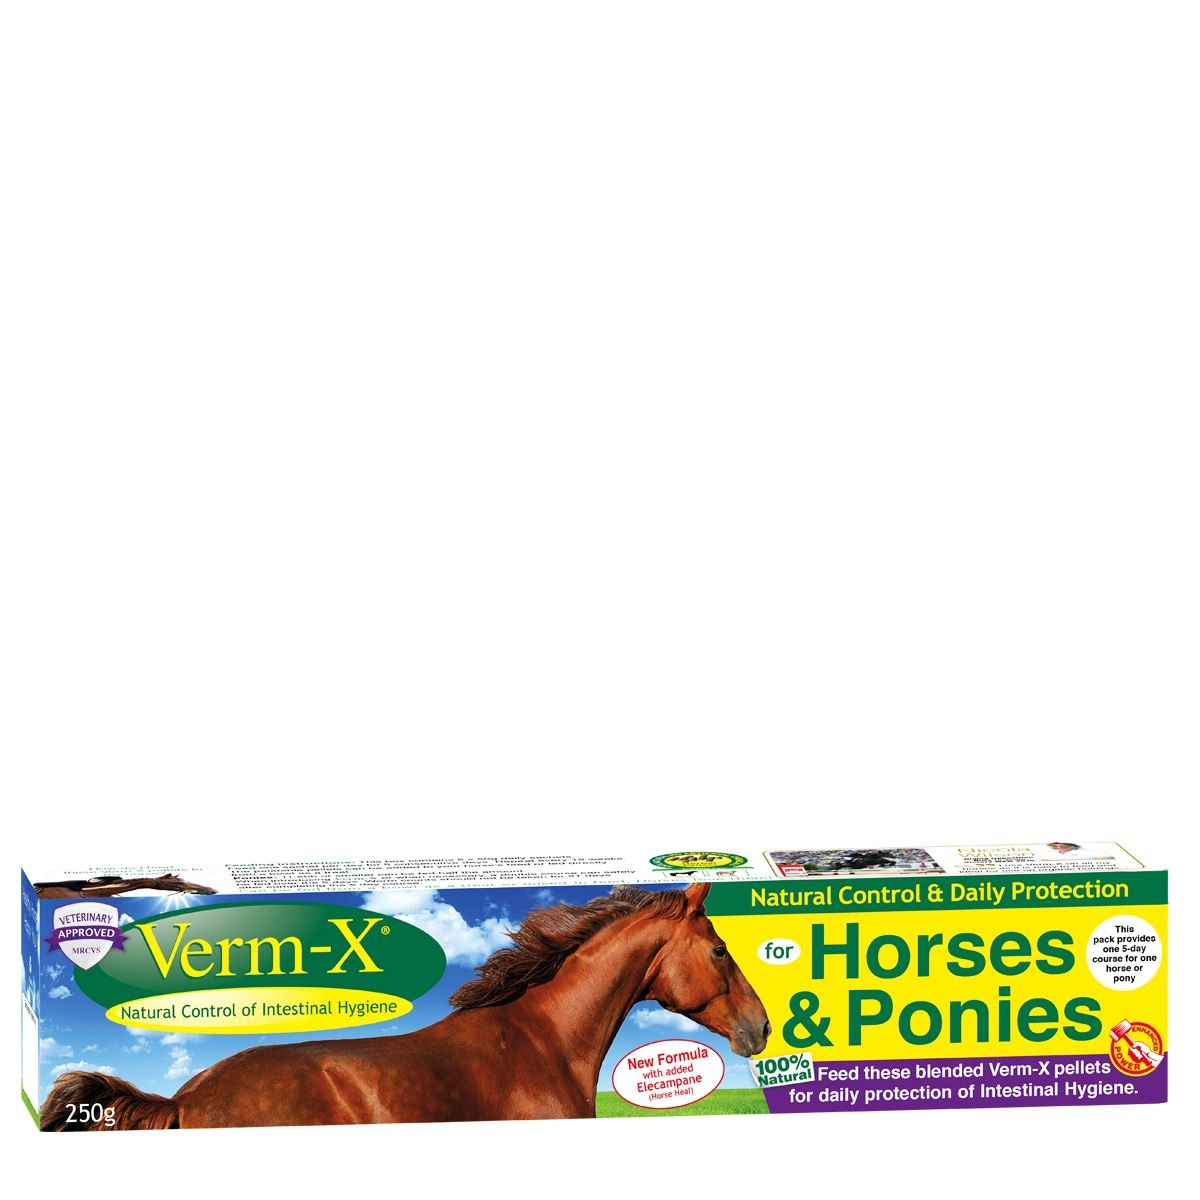 negozio outlet VERM-X HERBAL PELLETS FOR HORSES & PONIES - 12 X X X 250 GM BOX - VMX0102  il più alla moda